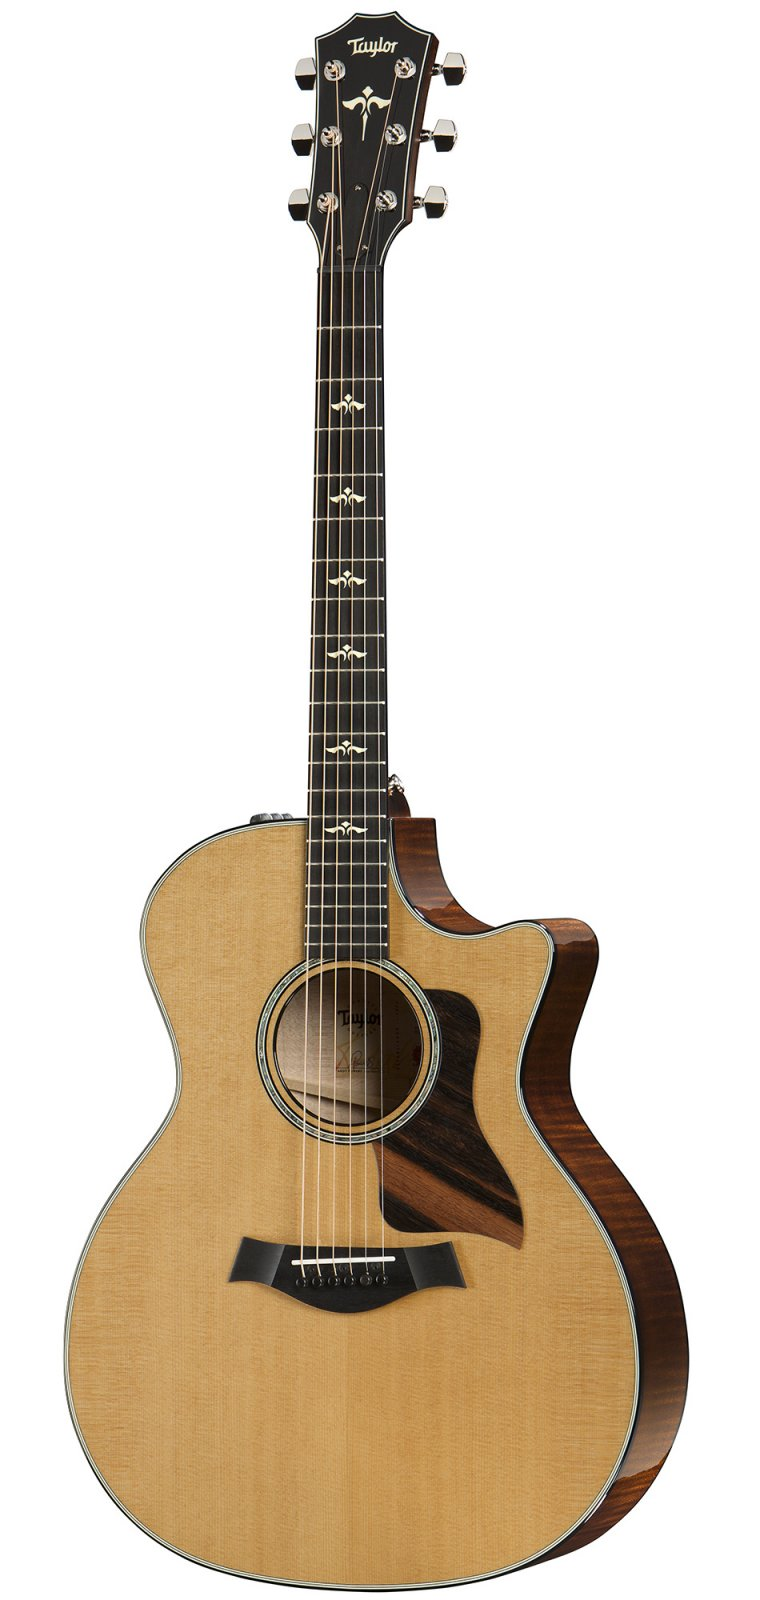 Taylor 614ce, V-Class Bracing, Grand Auditorium Acoustic/Electric Guitar with Hardshell Case